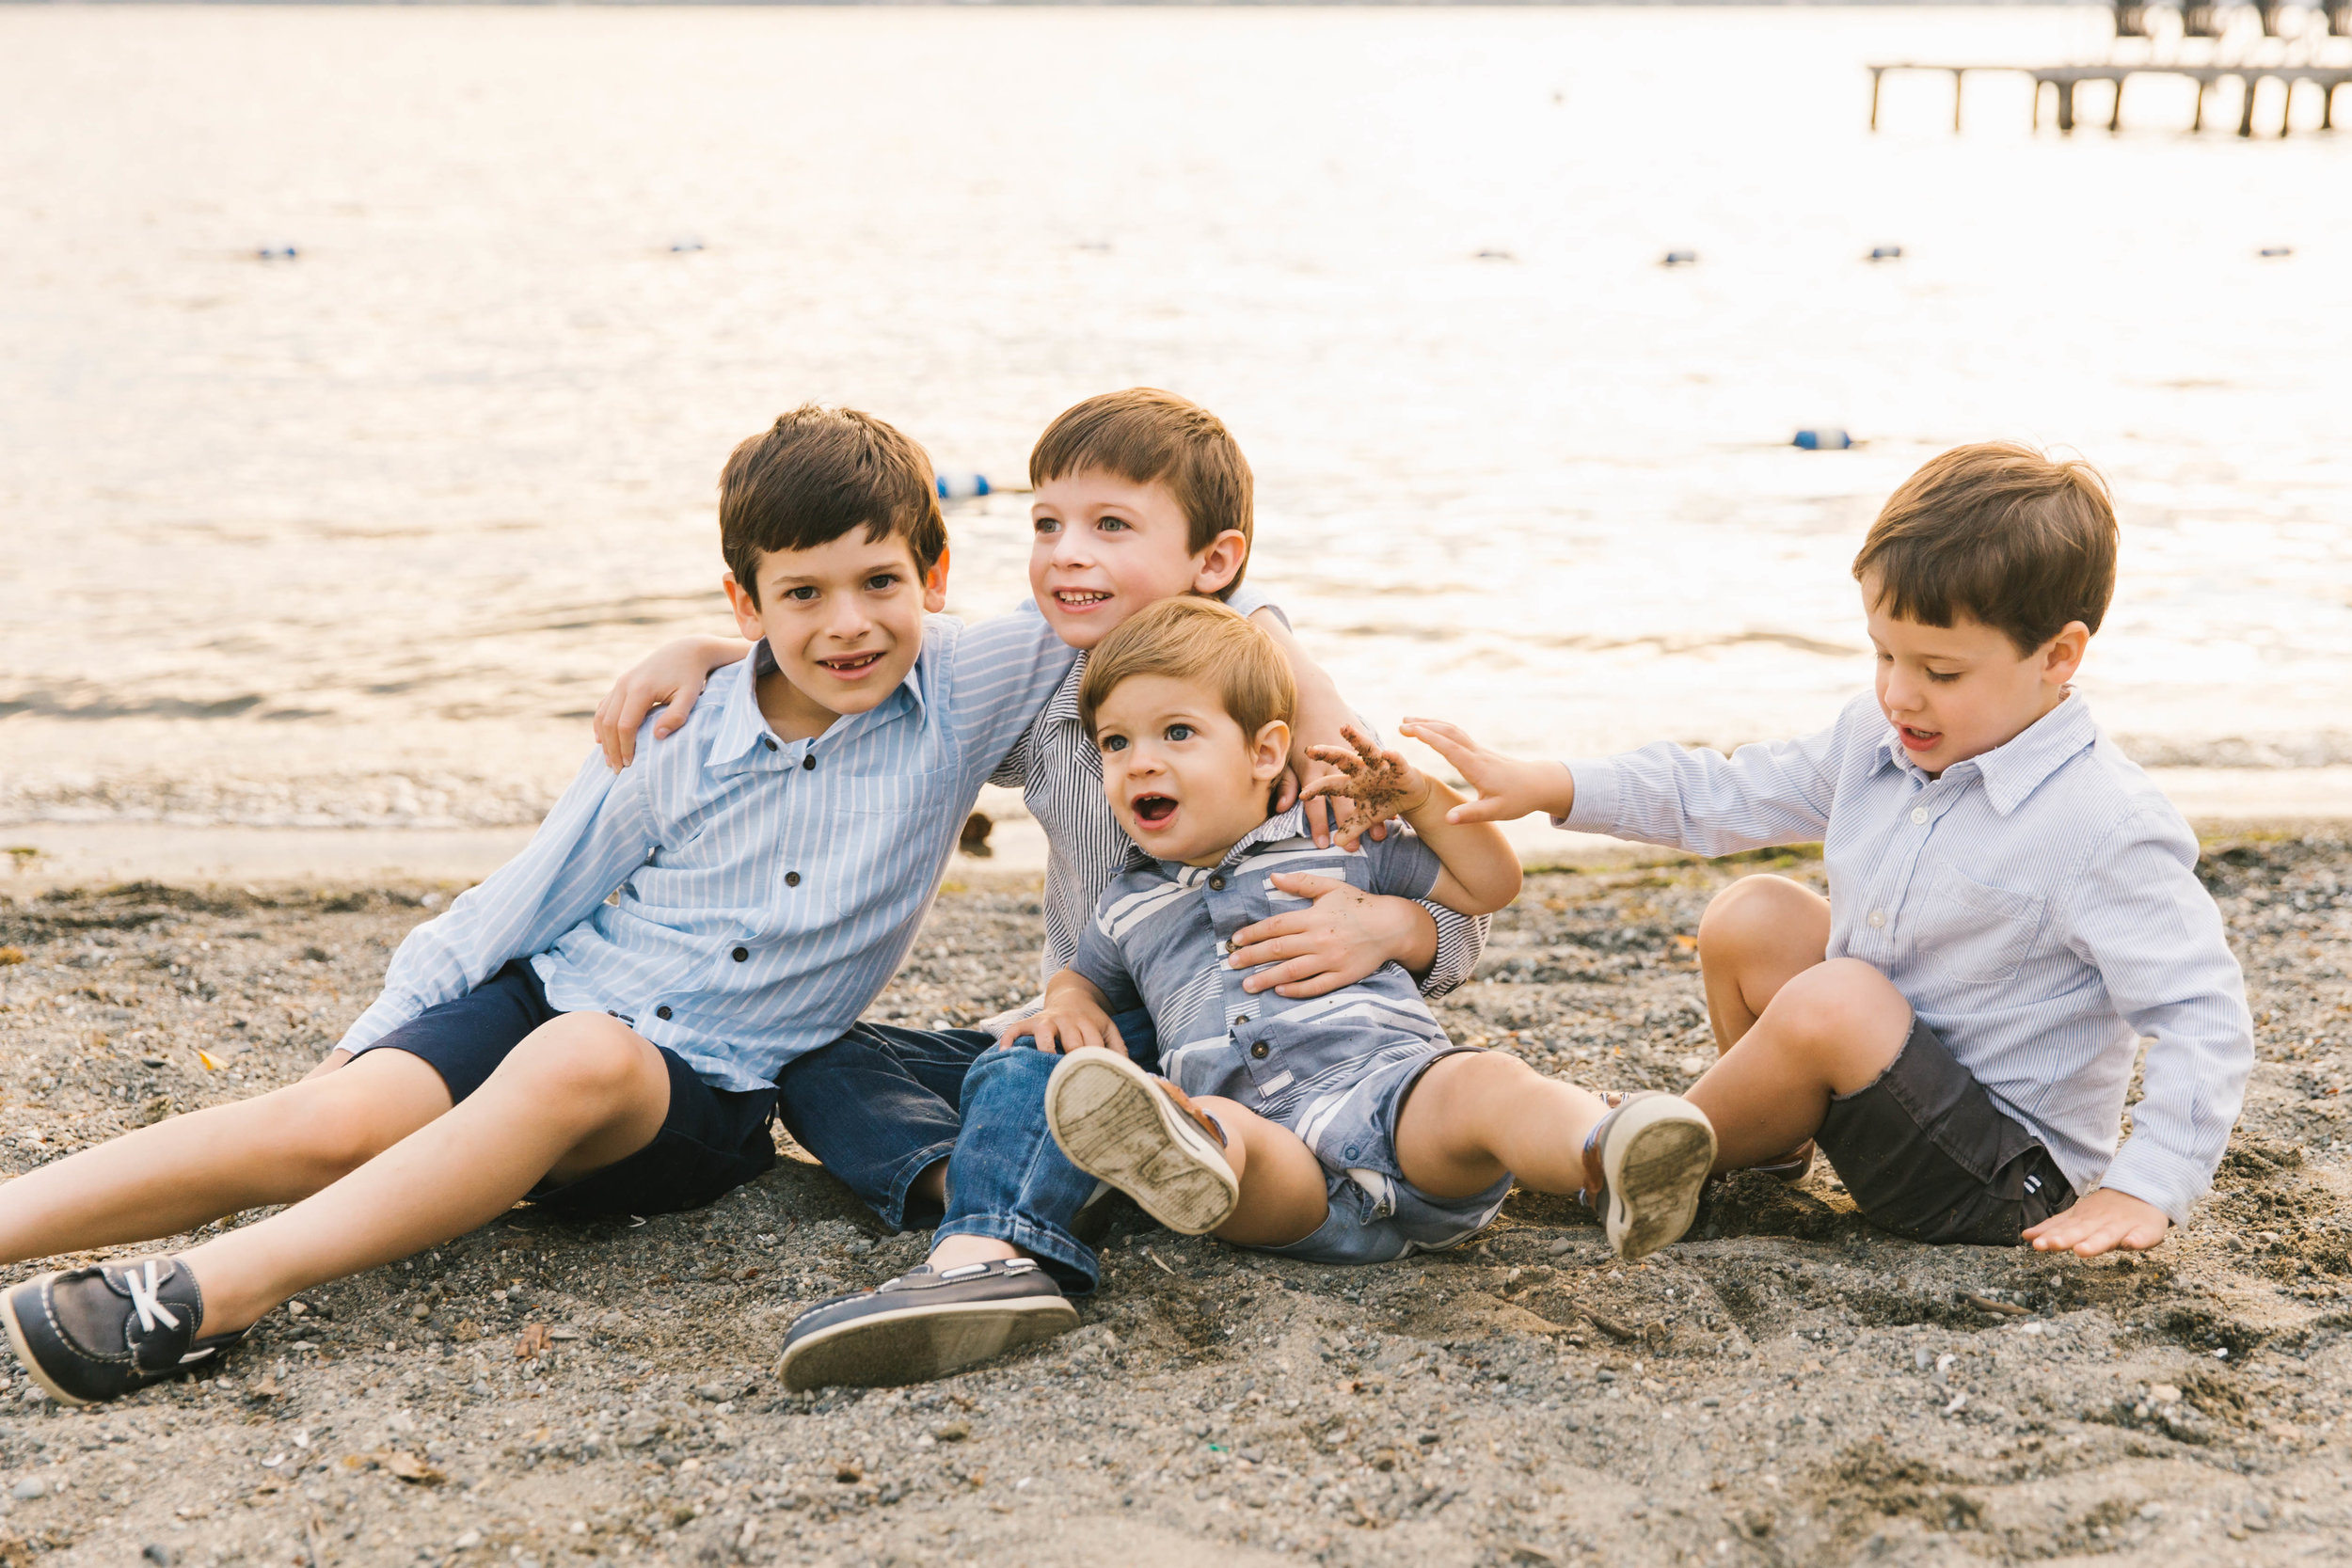 Seattle Family Photography Beach Session Golden Hour Natural Light, Mom and Boys, sunset on the water by Chelsea Macor Photography-22.jpg